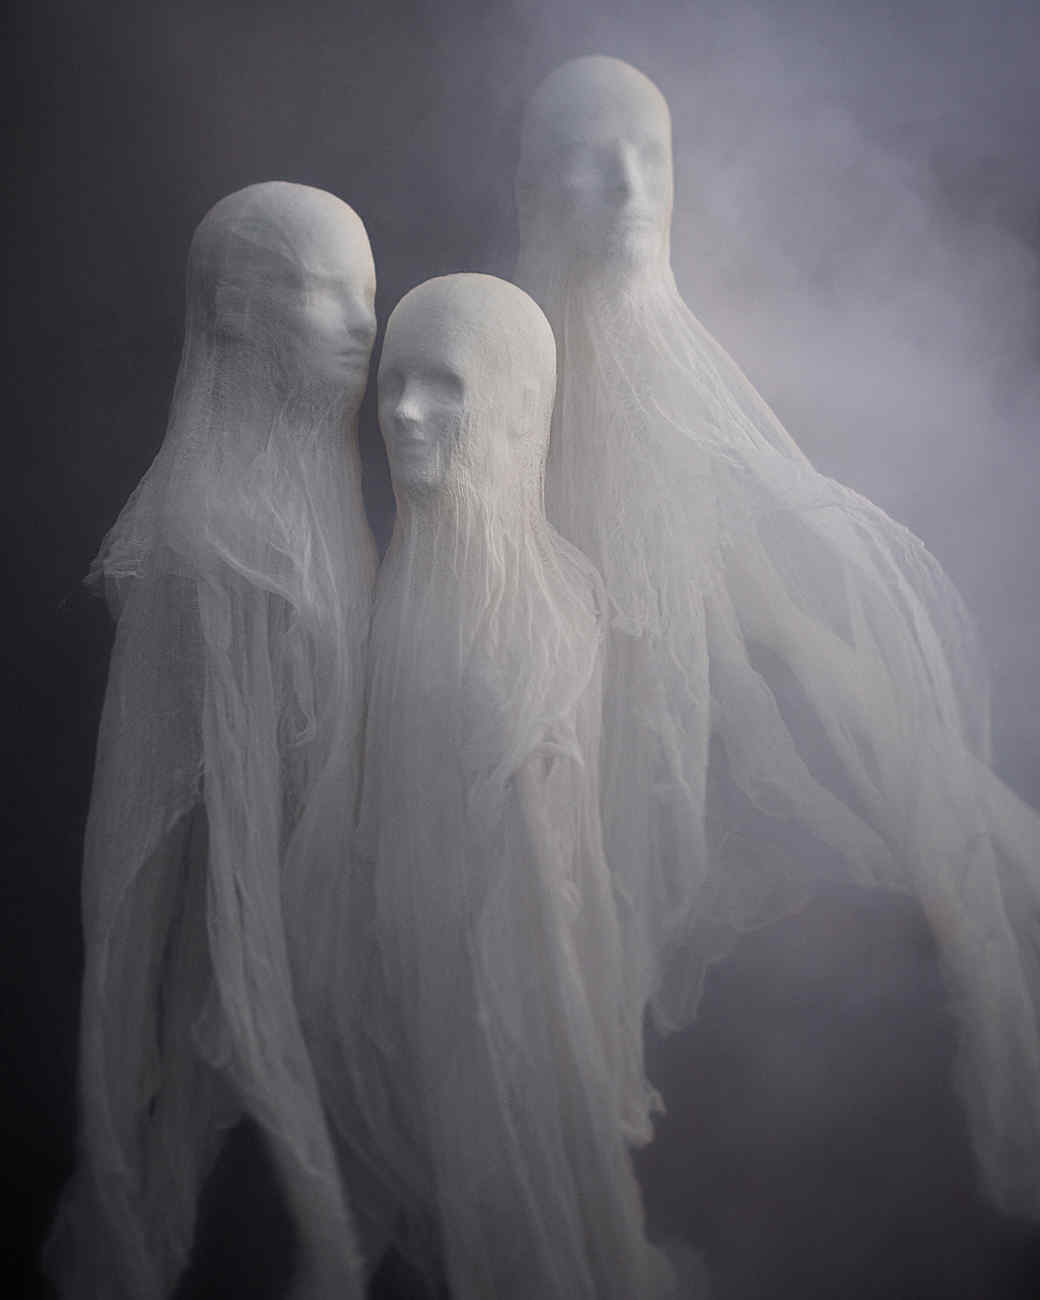 cloth-ghosts-phobias-1011mld107647.jpg